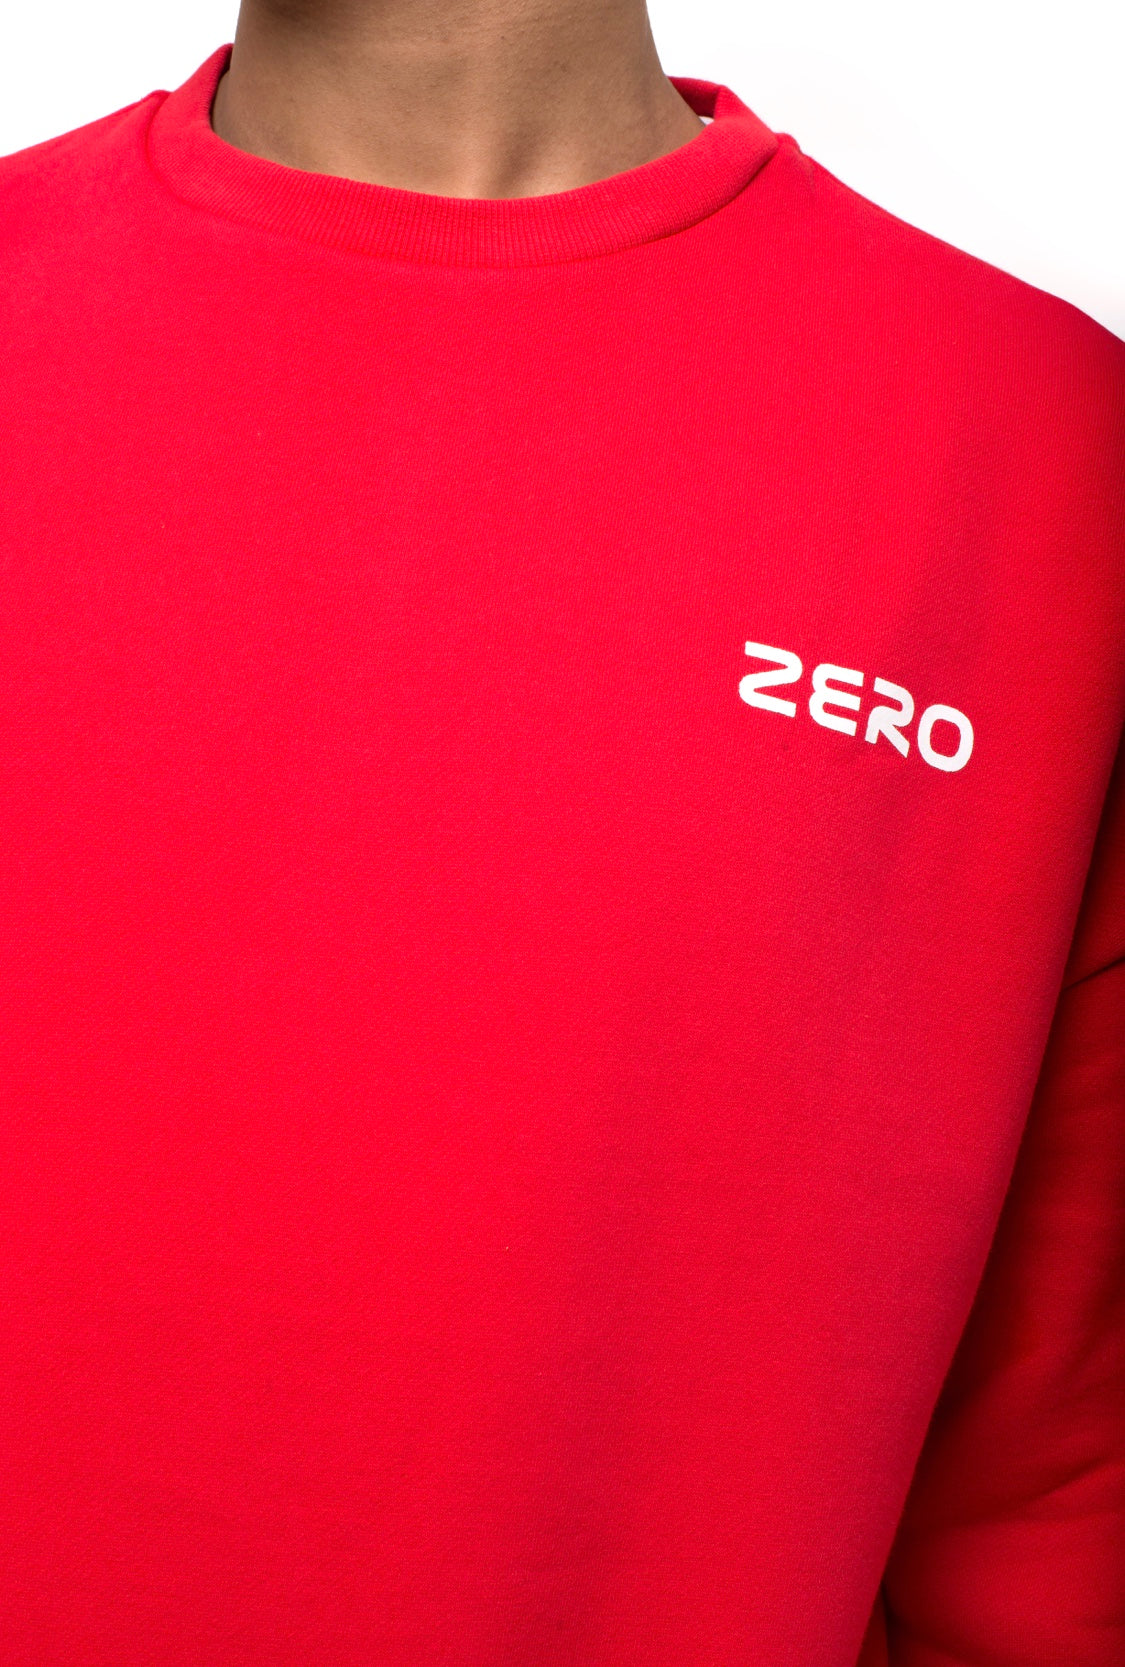 ZERO CAMPAIGN SWEATSHIRT - RED